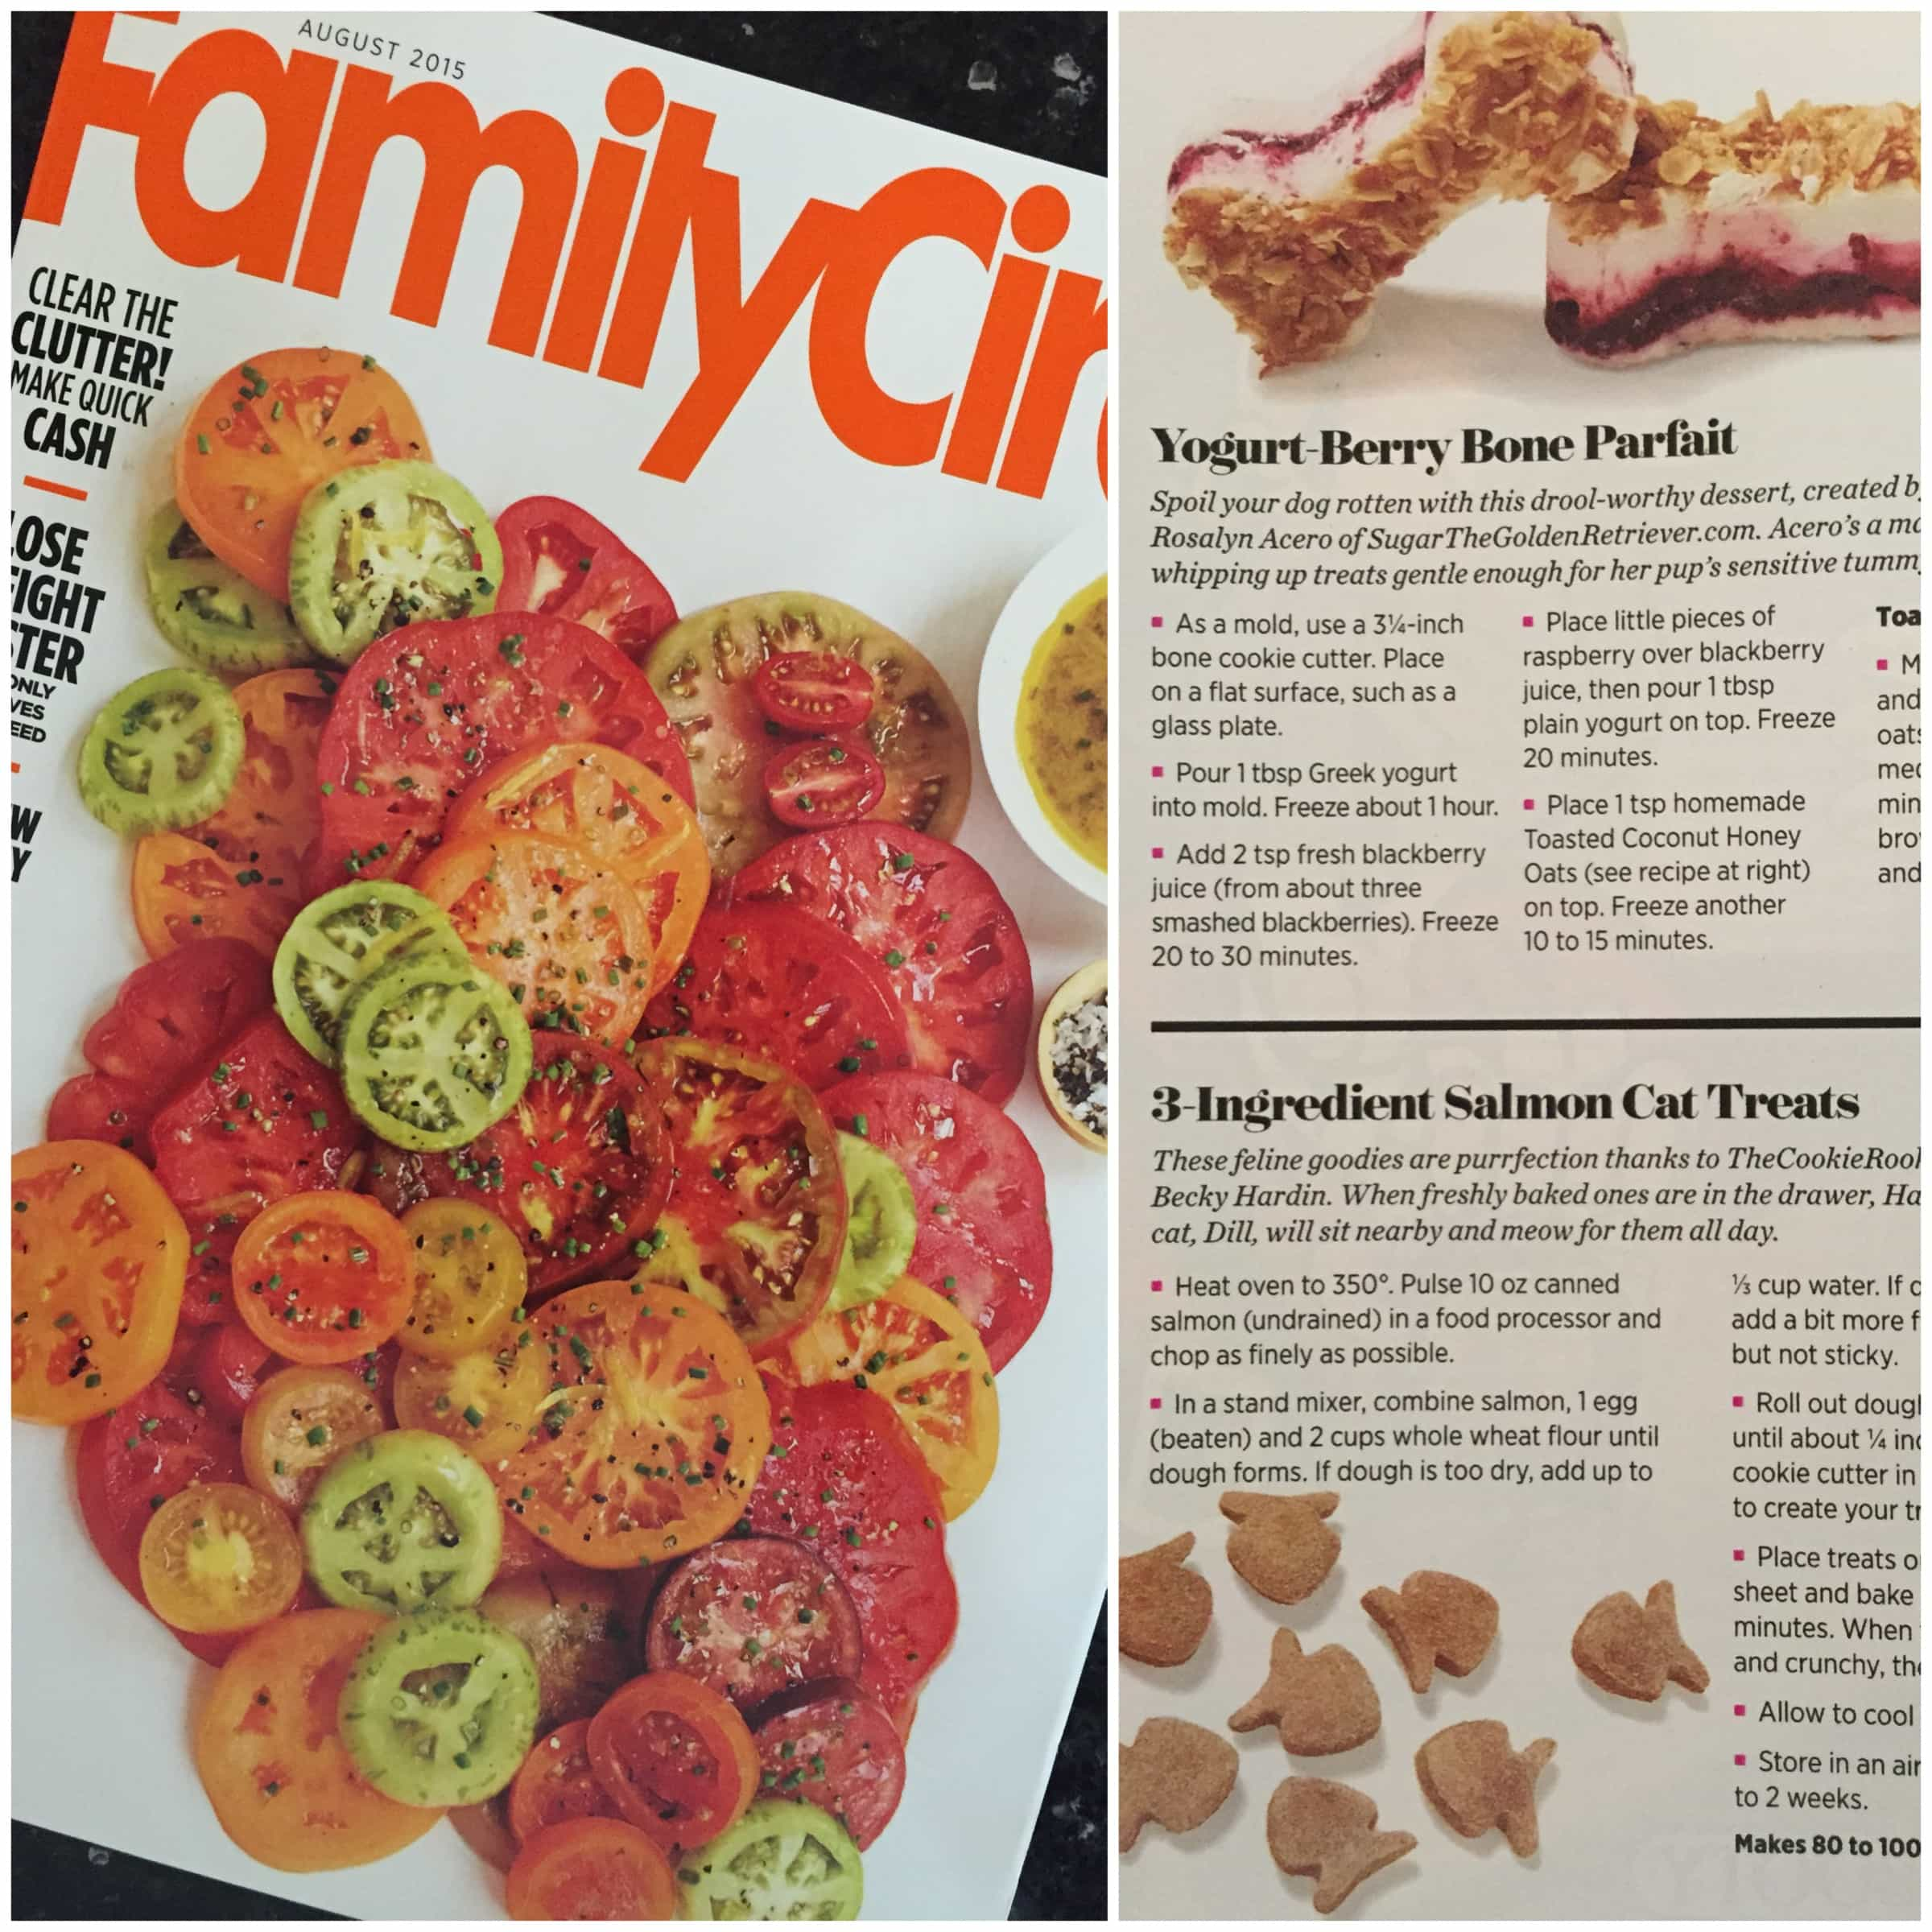 Homemade cat treats recipe 3 ingredient salmon cat treats of family circle magazine along with some other awesome pet treat recipes its such an honor dill was beyond excited to see his name in print forumfinder Image collections